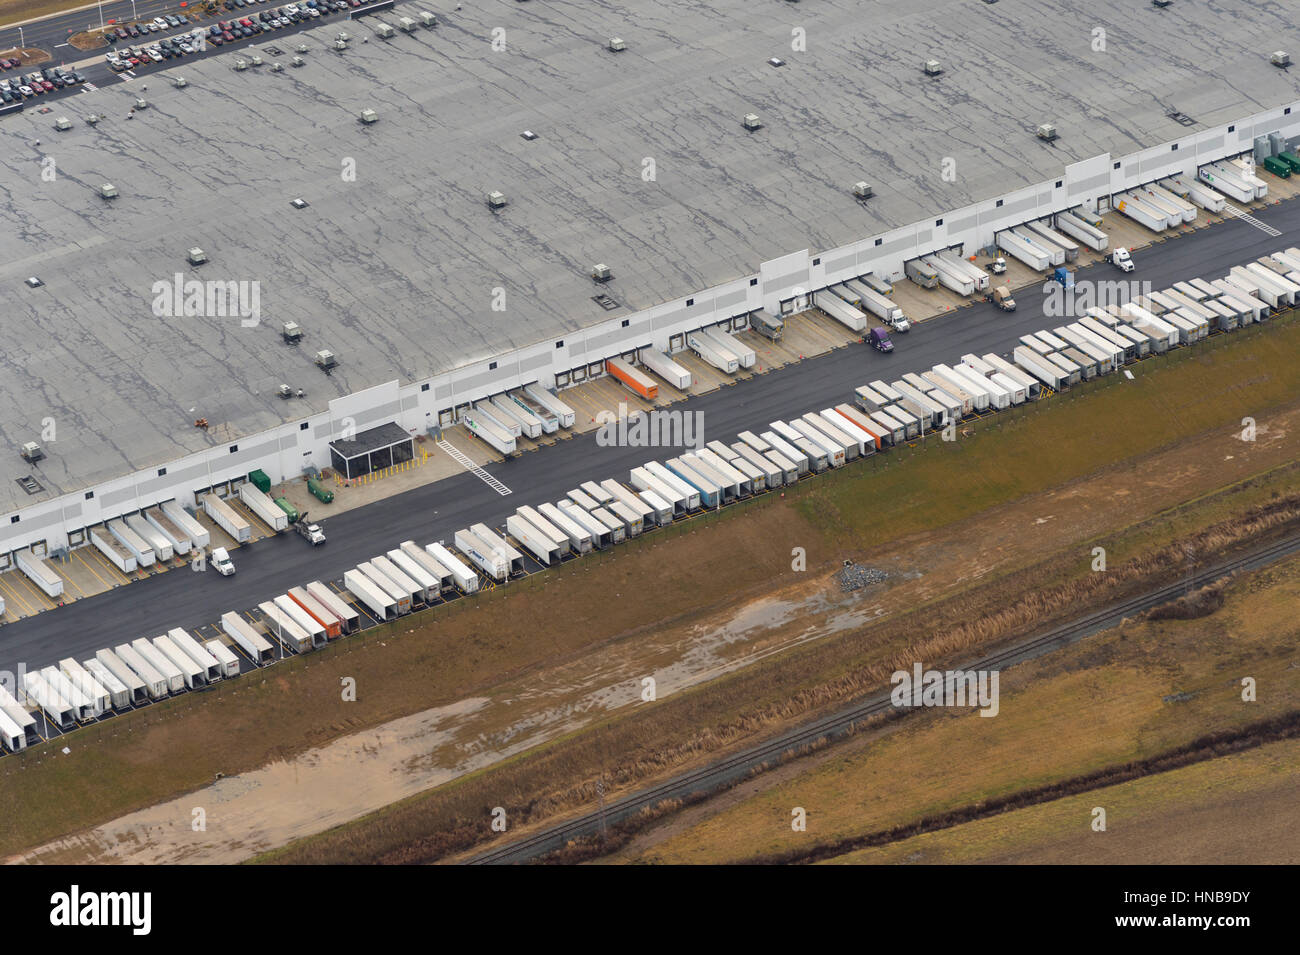 Distribution Center Aerial View - Stock Image